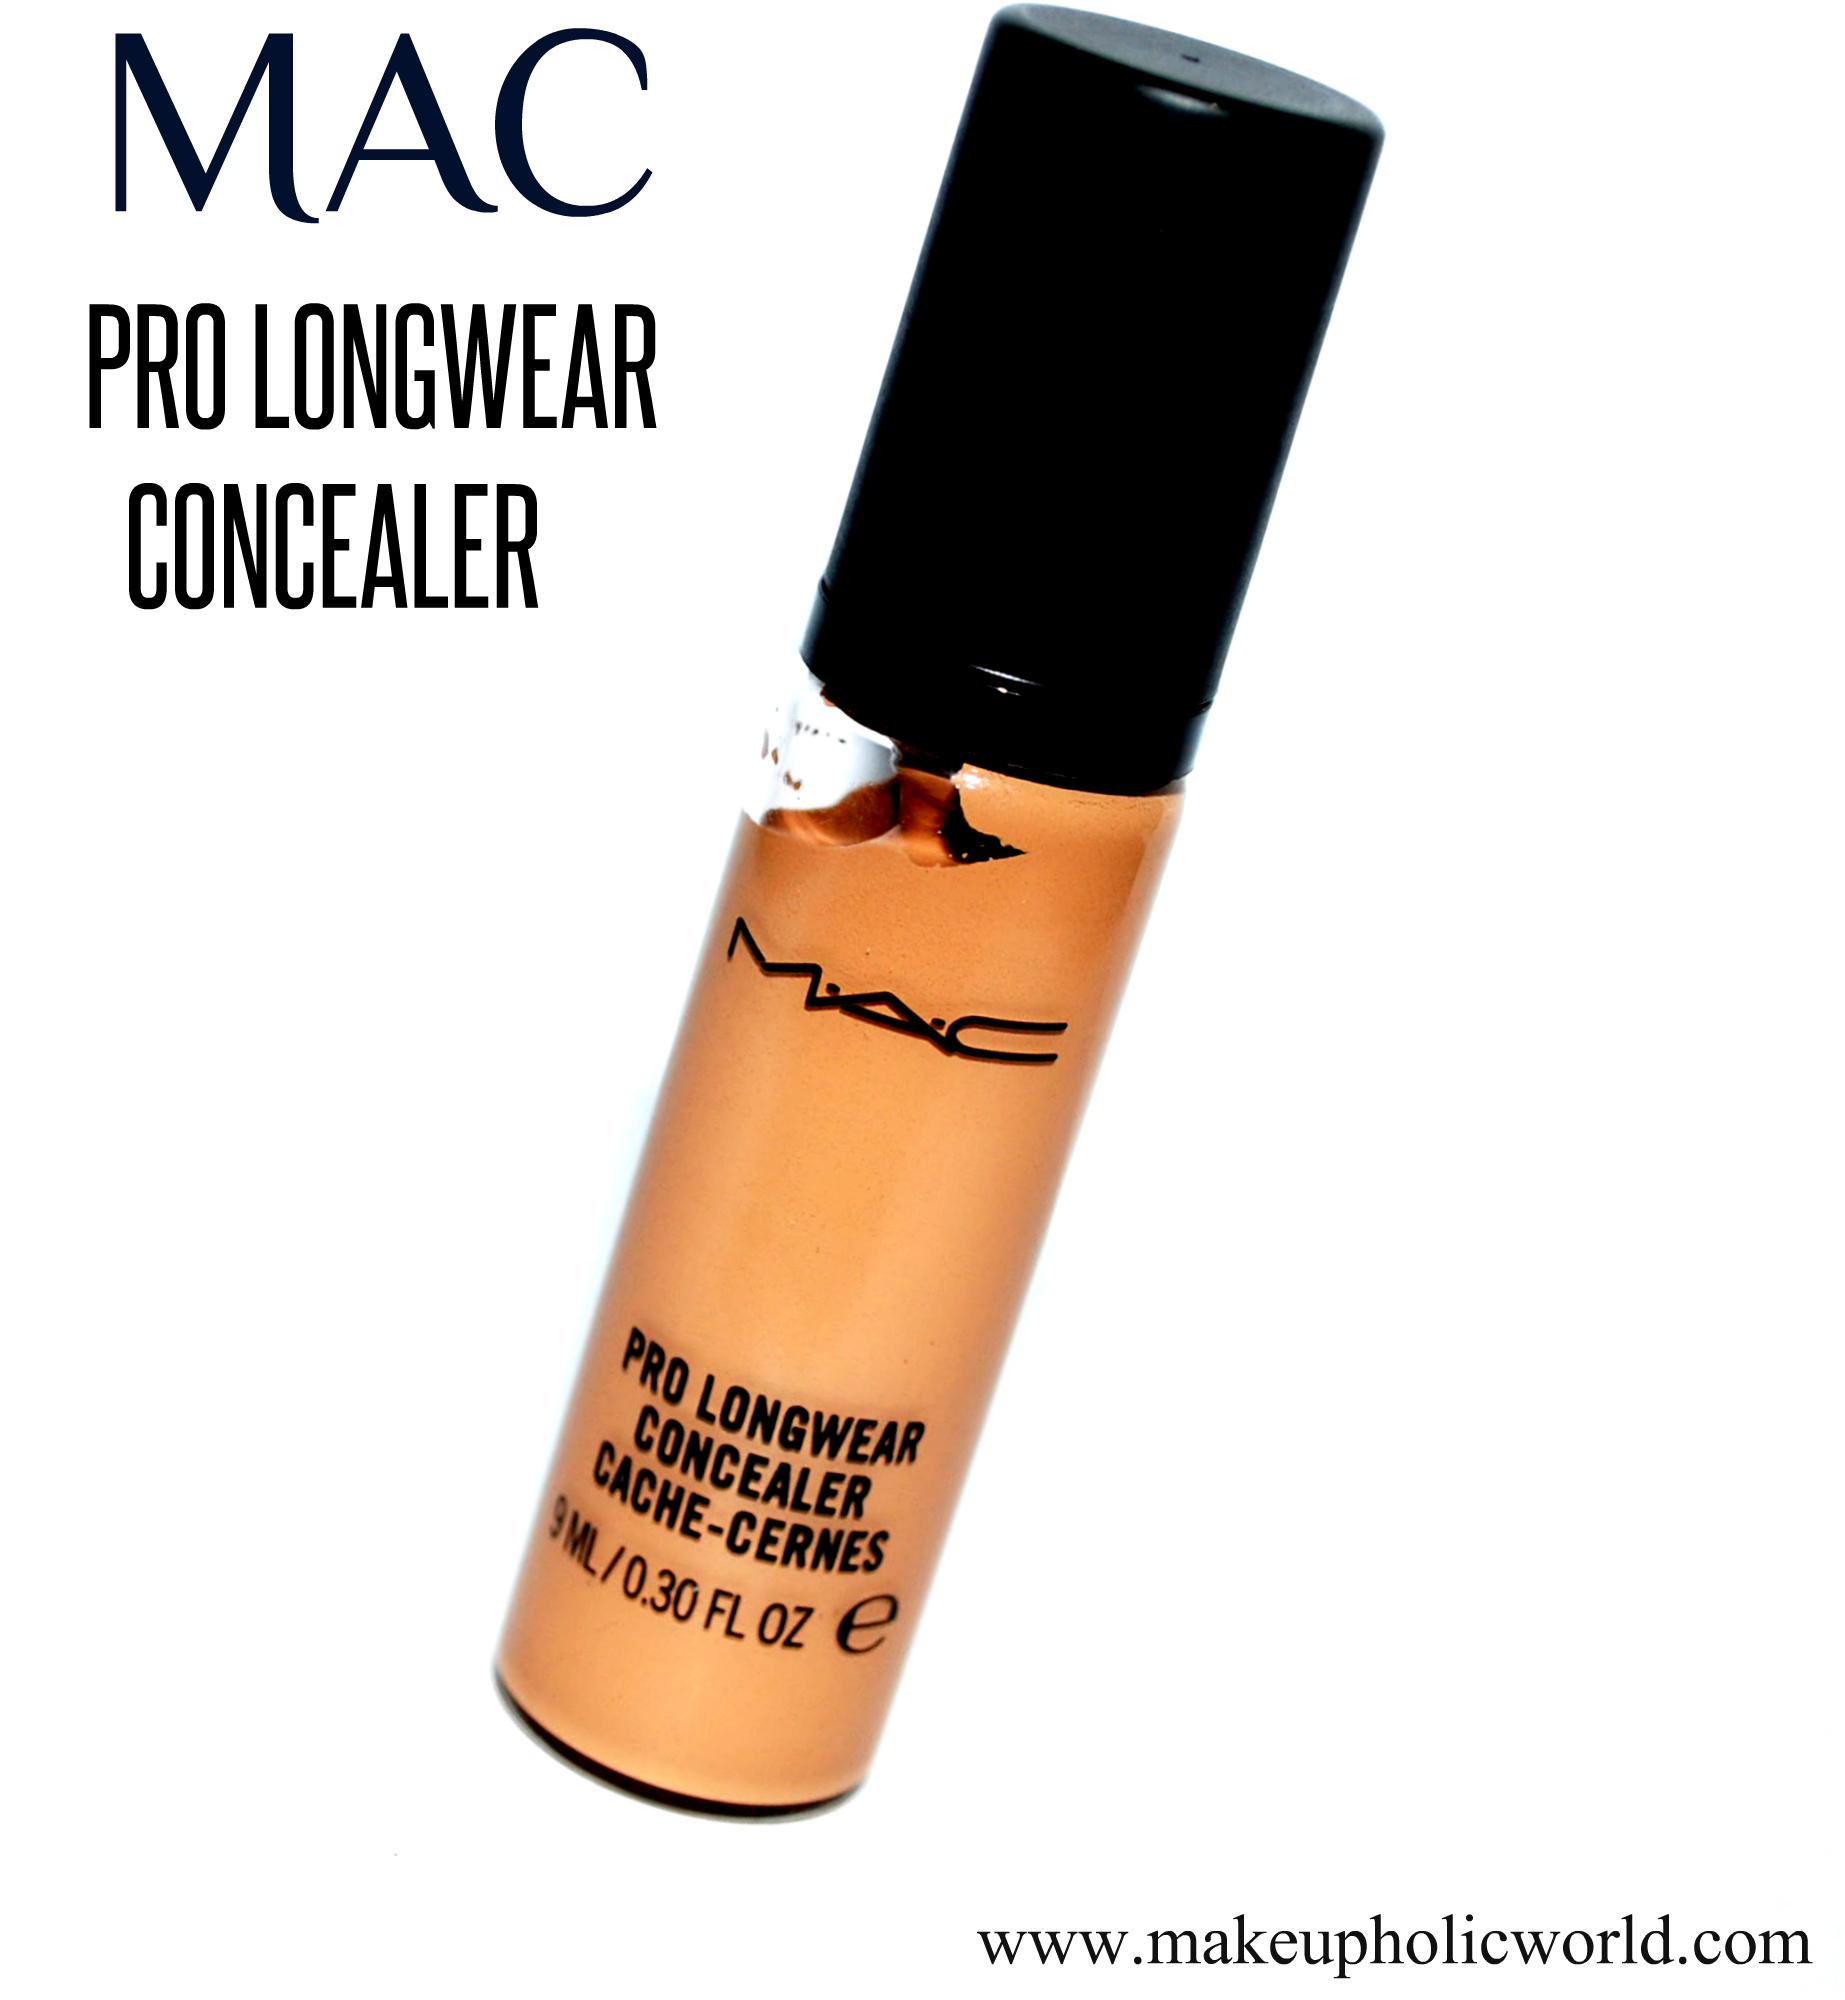 mac pro longwear concealer bottle